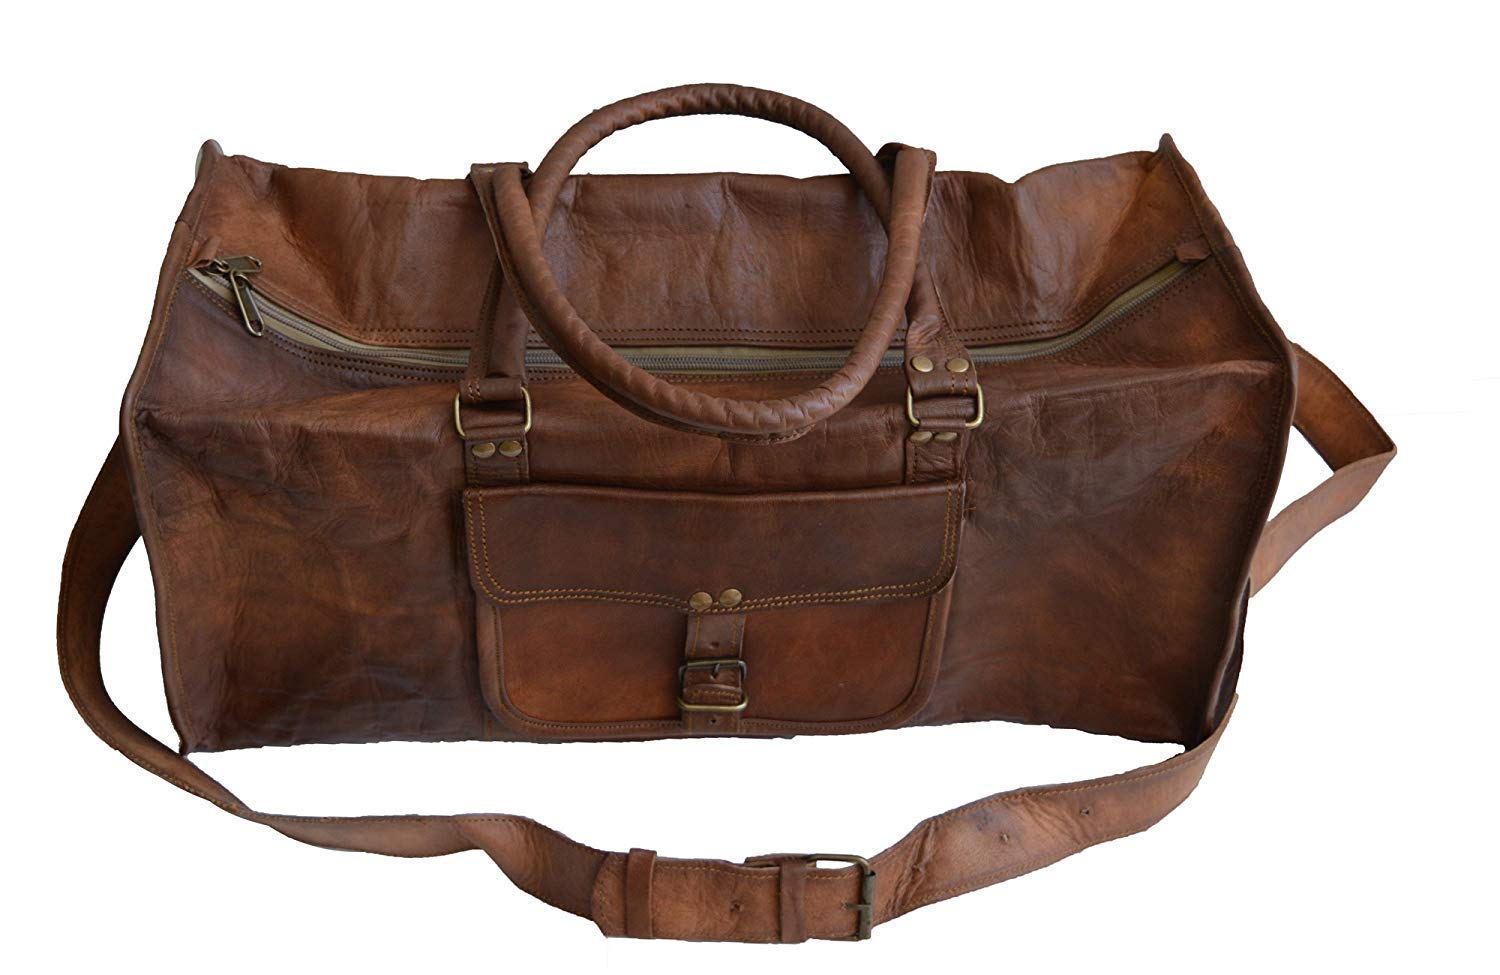 Jaald 20 Leather Duffle Bag Travel Carry-on Luggage overnight Gym weekender bag